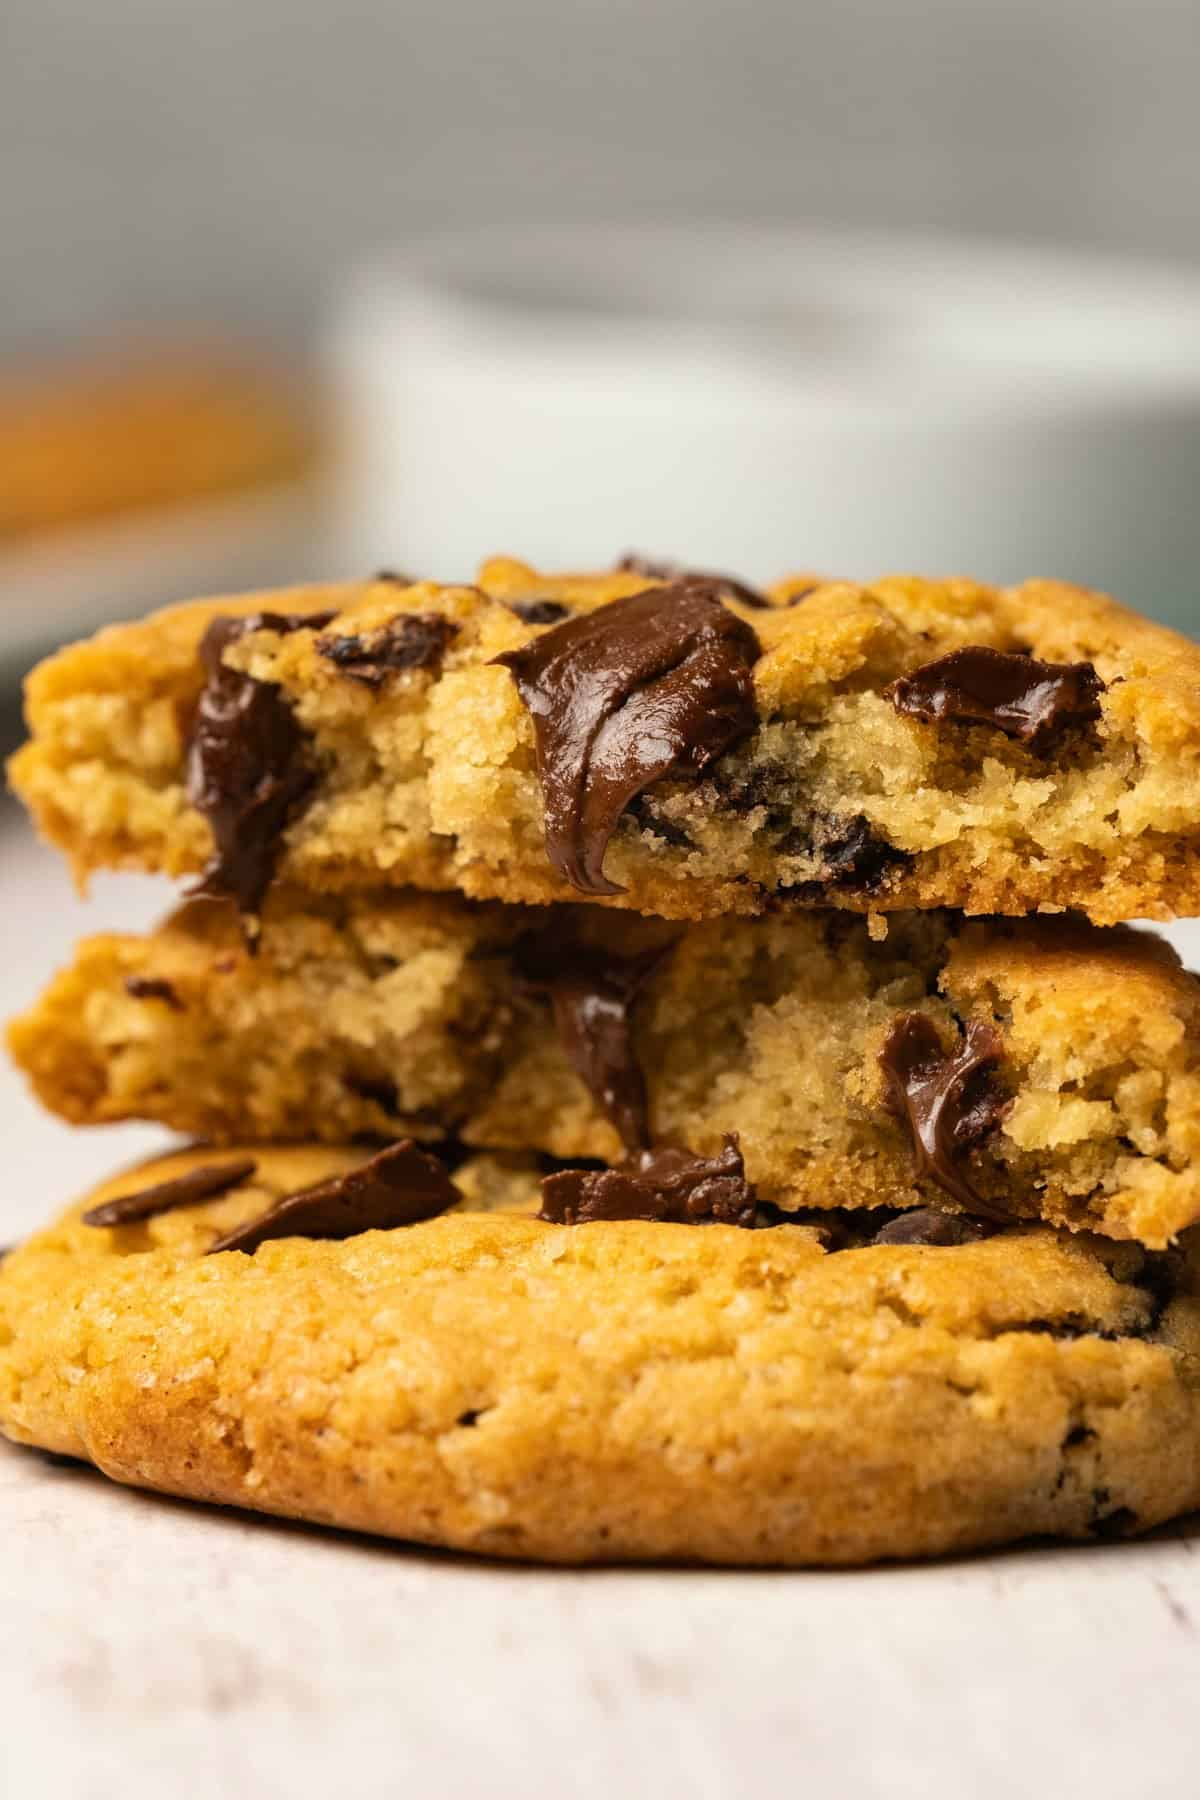 Chocolate chip cookies in a stack with the top cookie broken in half to show the center.